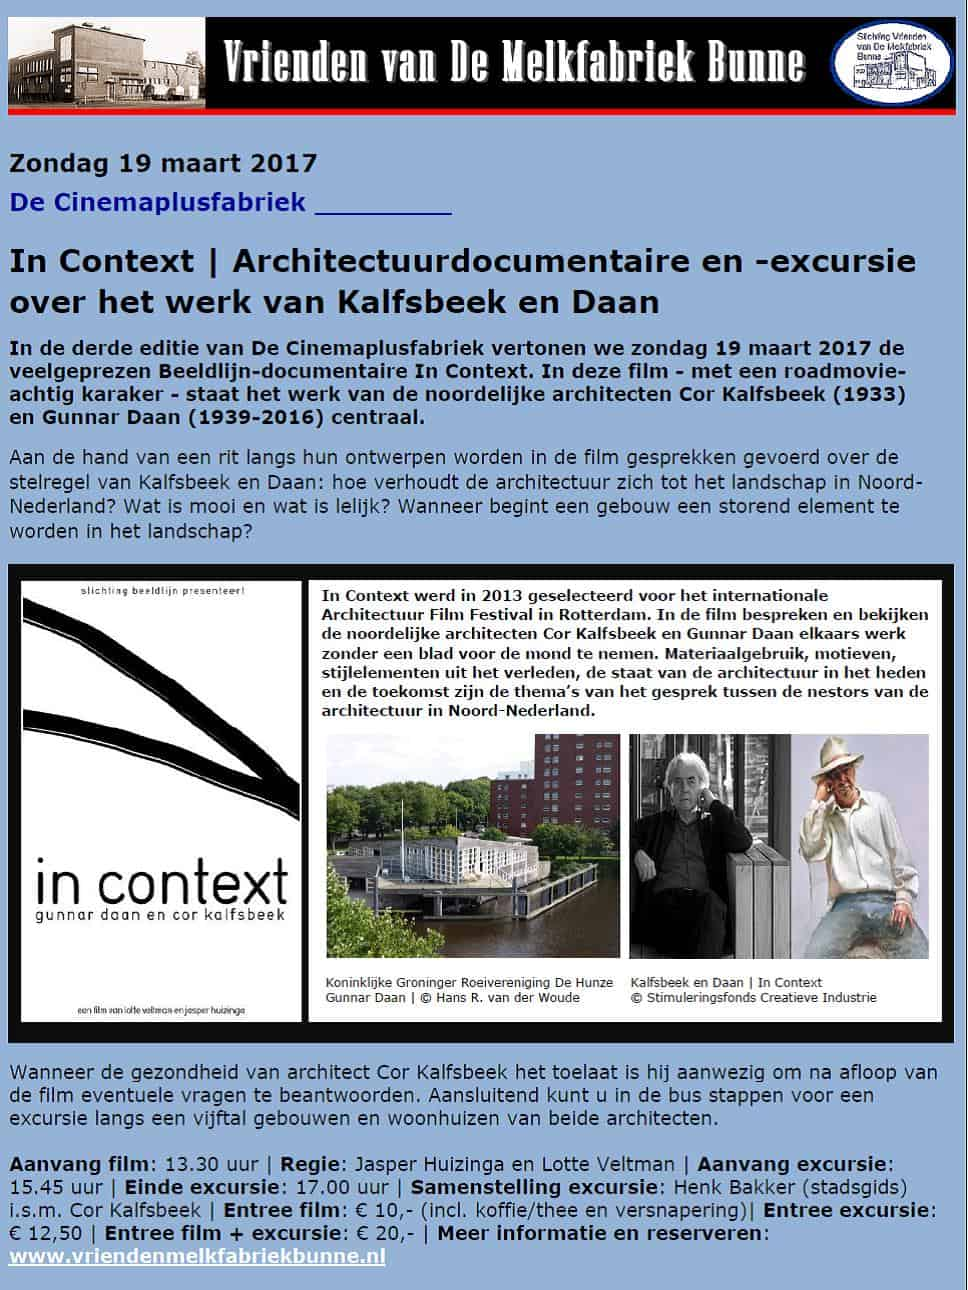 In Context @ De Melkfabriek